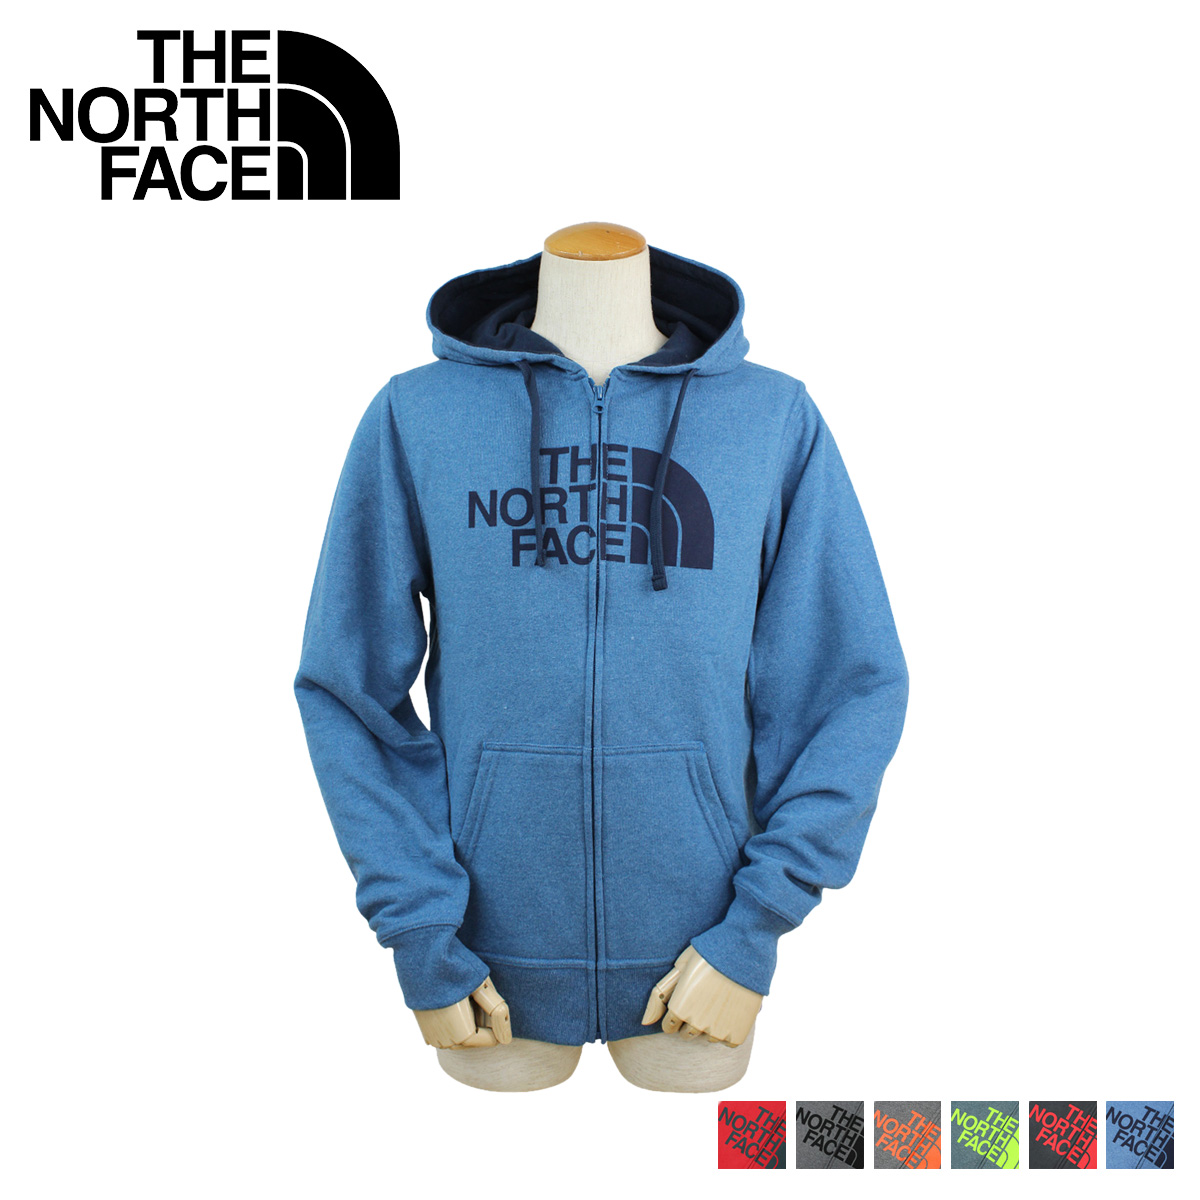 700b5774e THE NORTH FACE north face Hoodie zip up parka MEN'S HALF DOME FULL ZIP  HOODIE mens